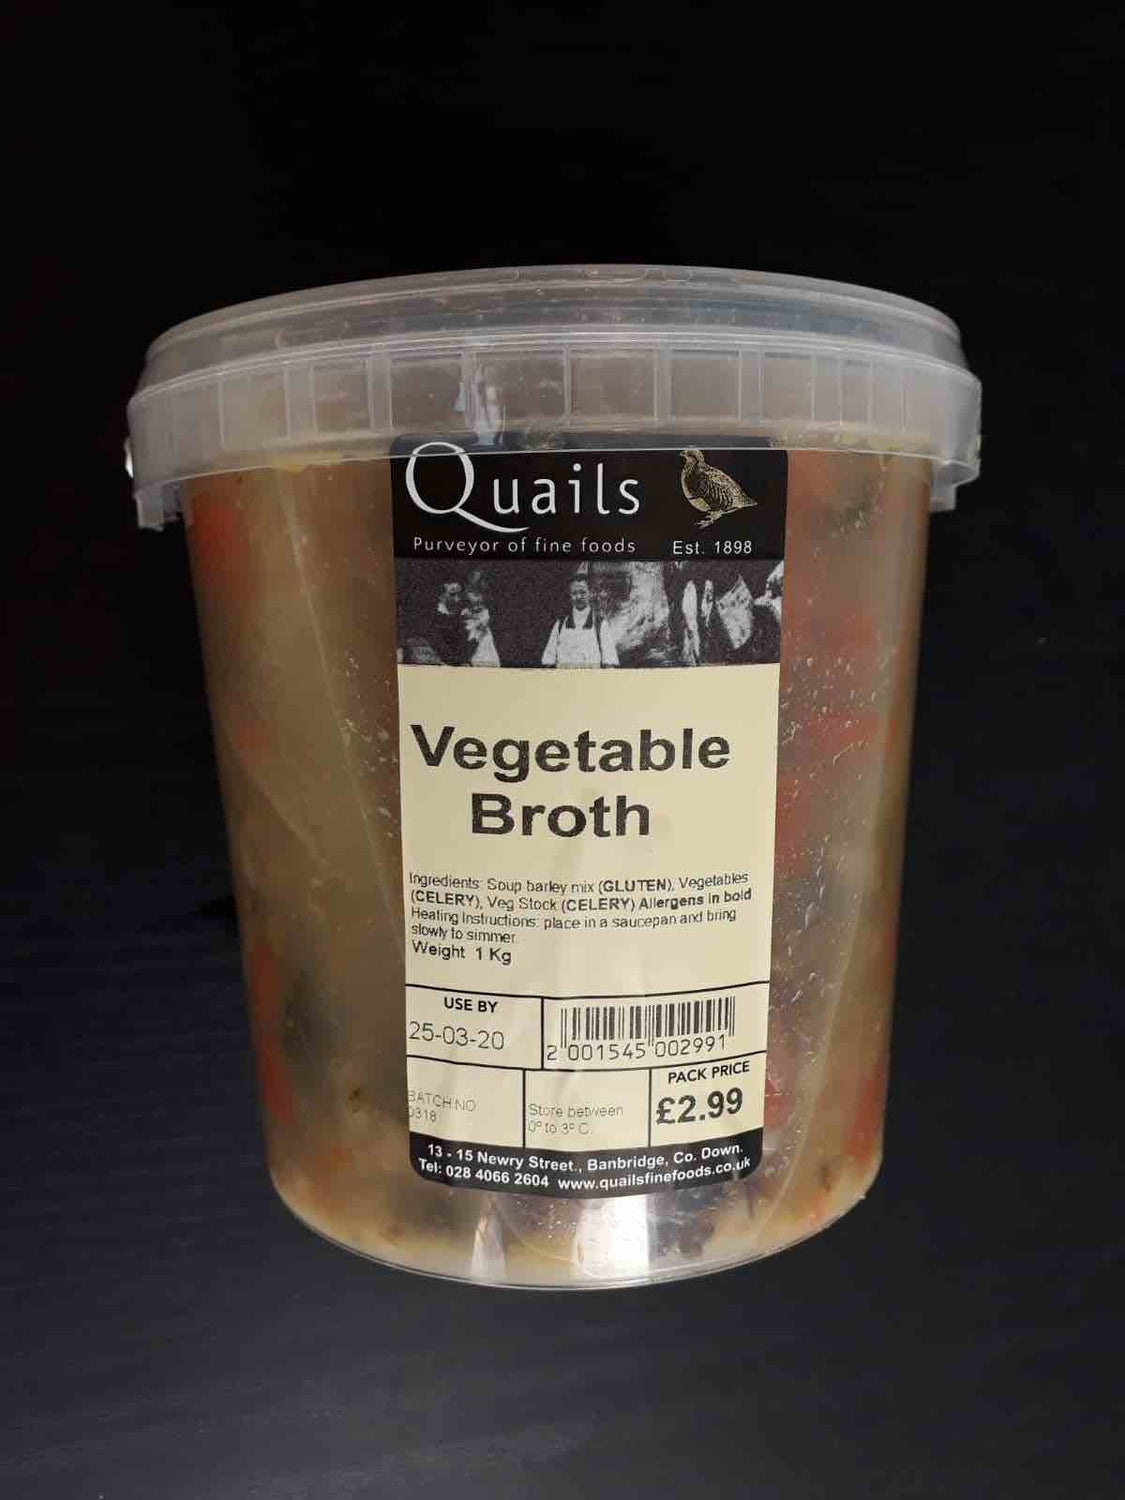 Quails Vegetable Broth